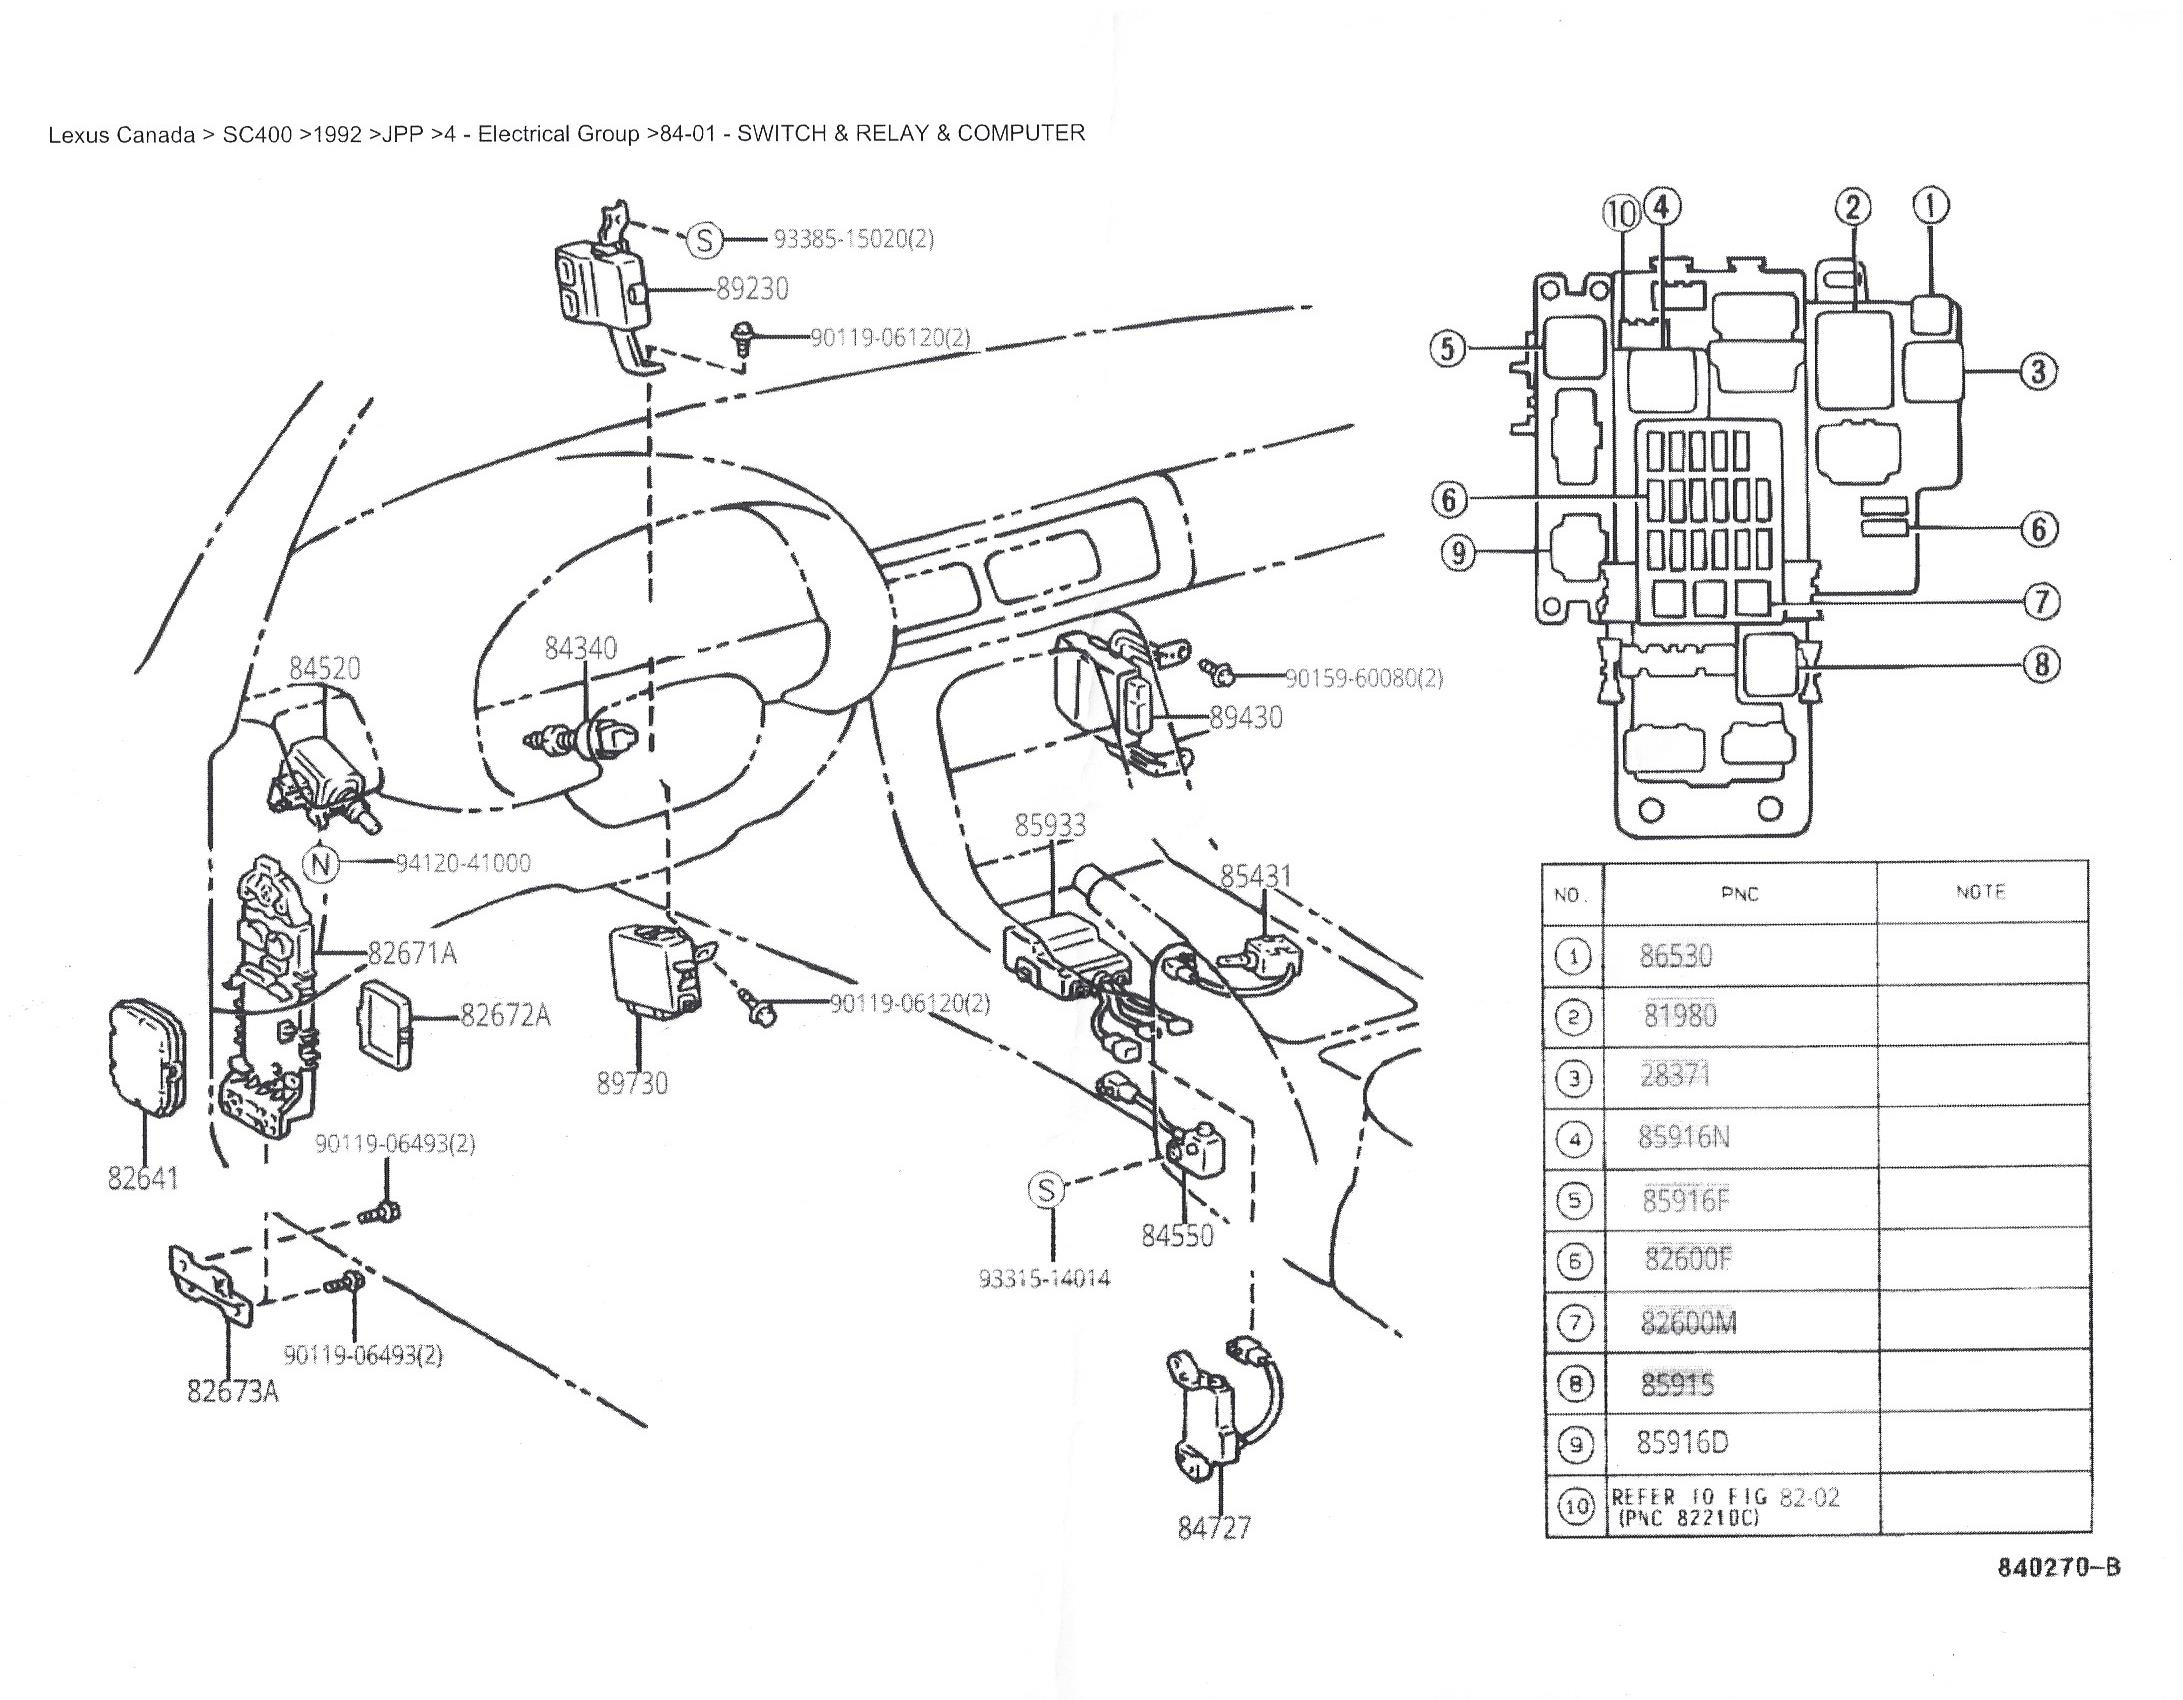 wiring diagram for lexus ls400